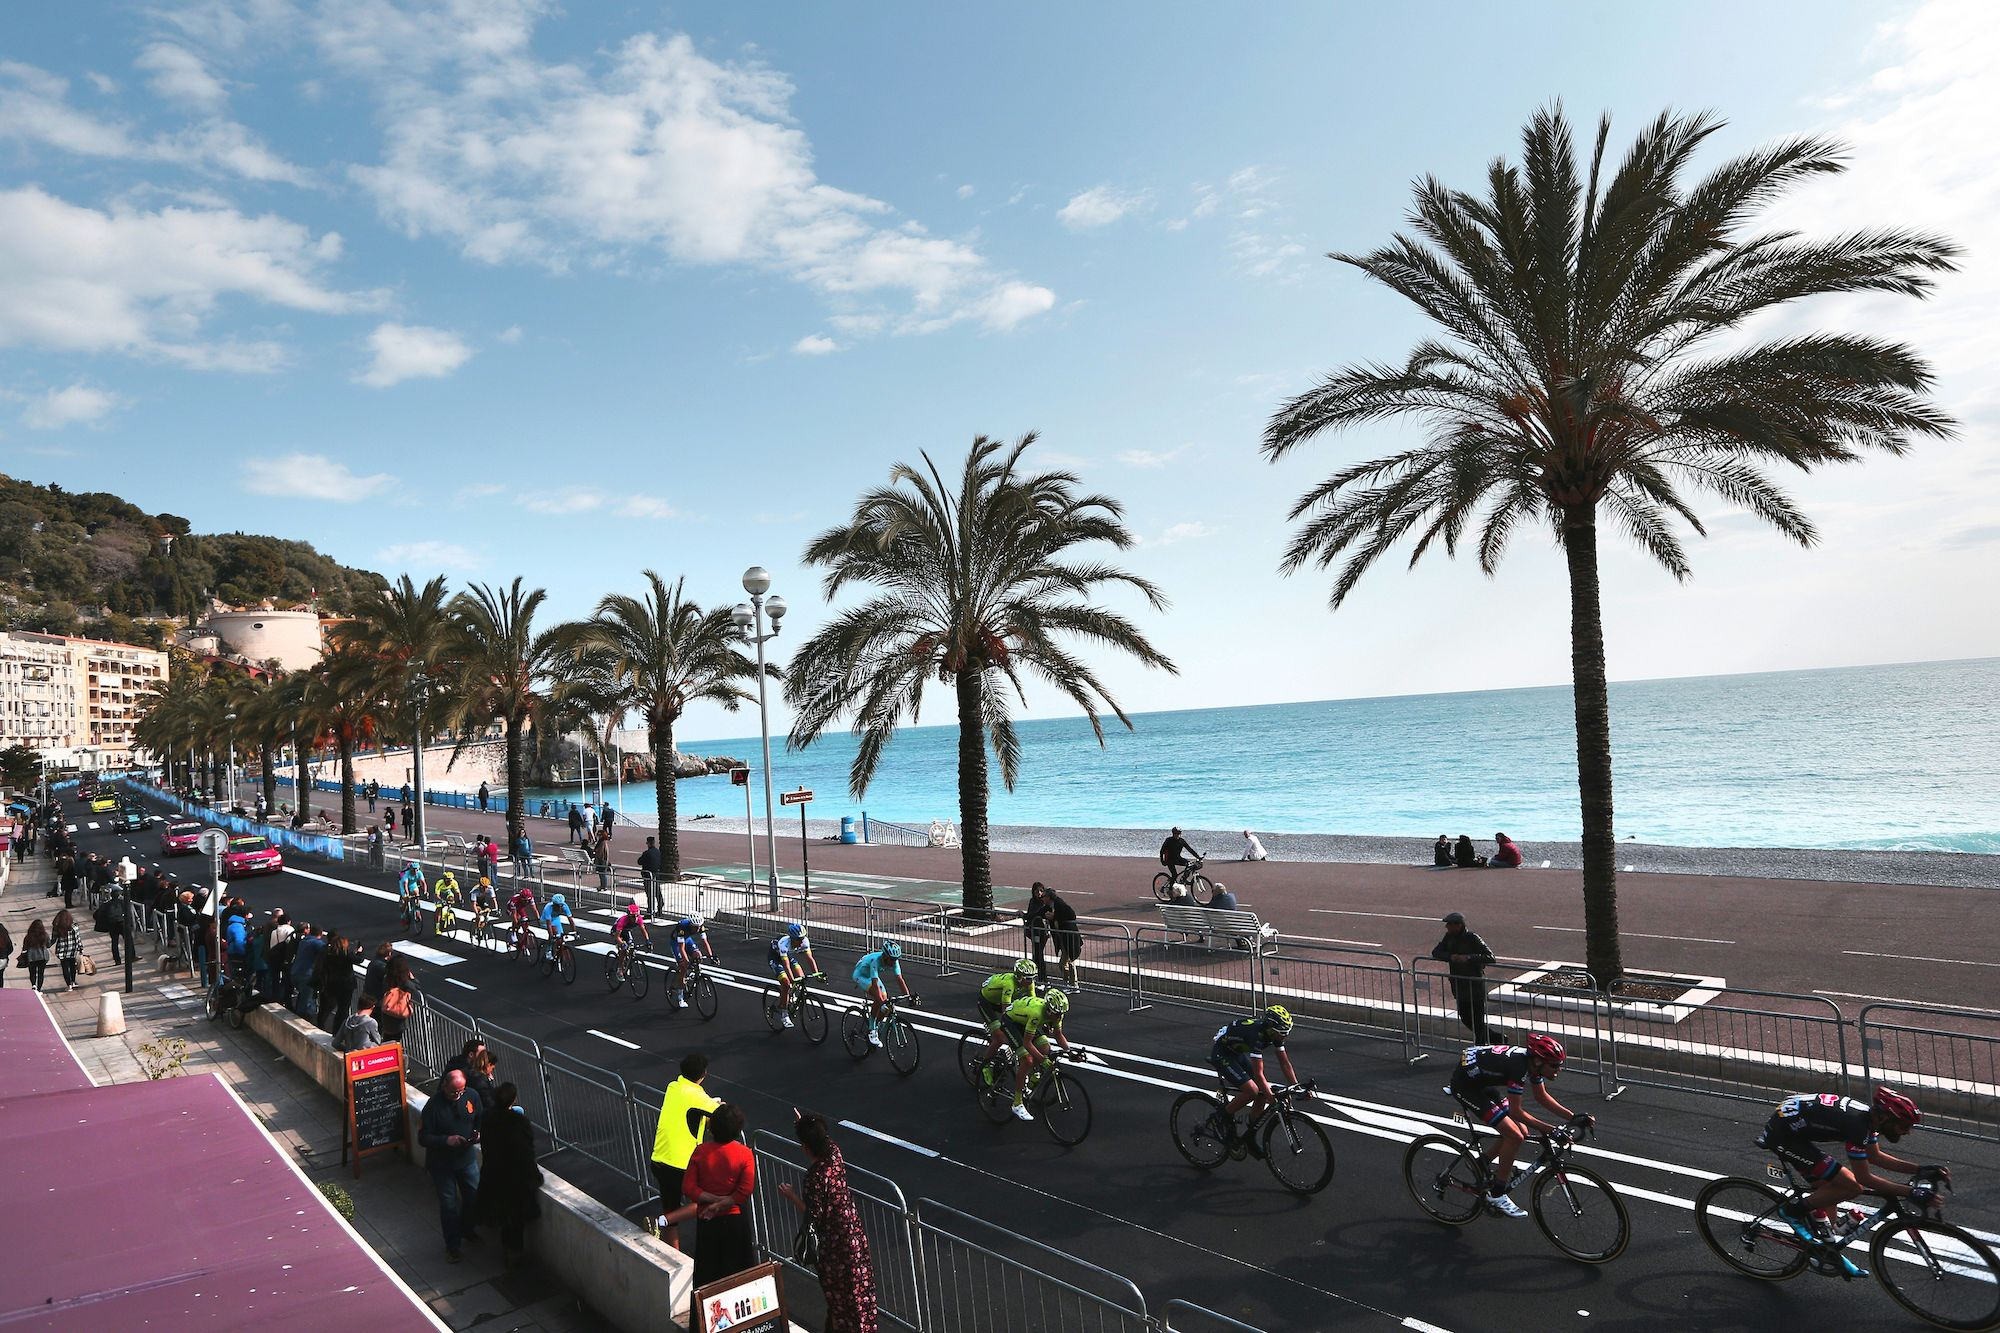 The Mayor of Nice doesn't want Paris-Nice to finish on seafront as planned